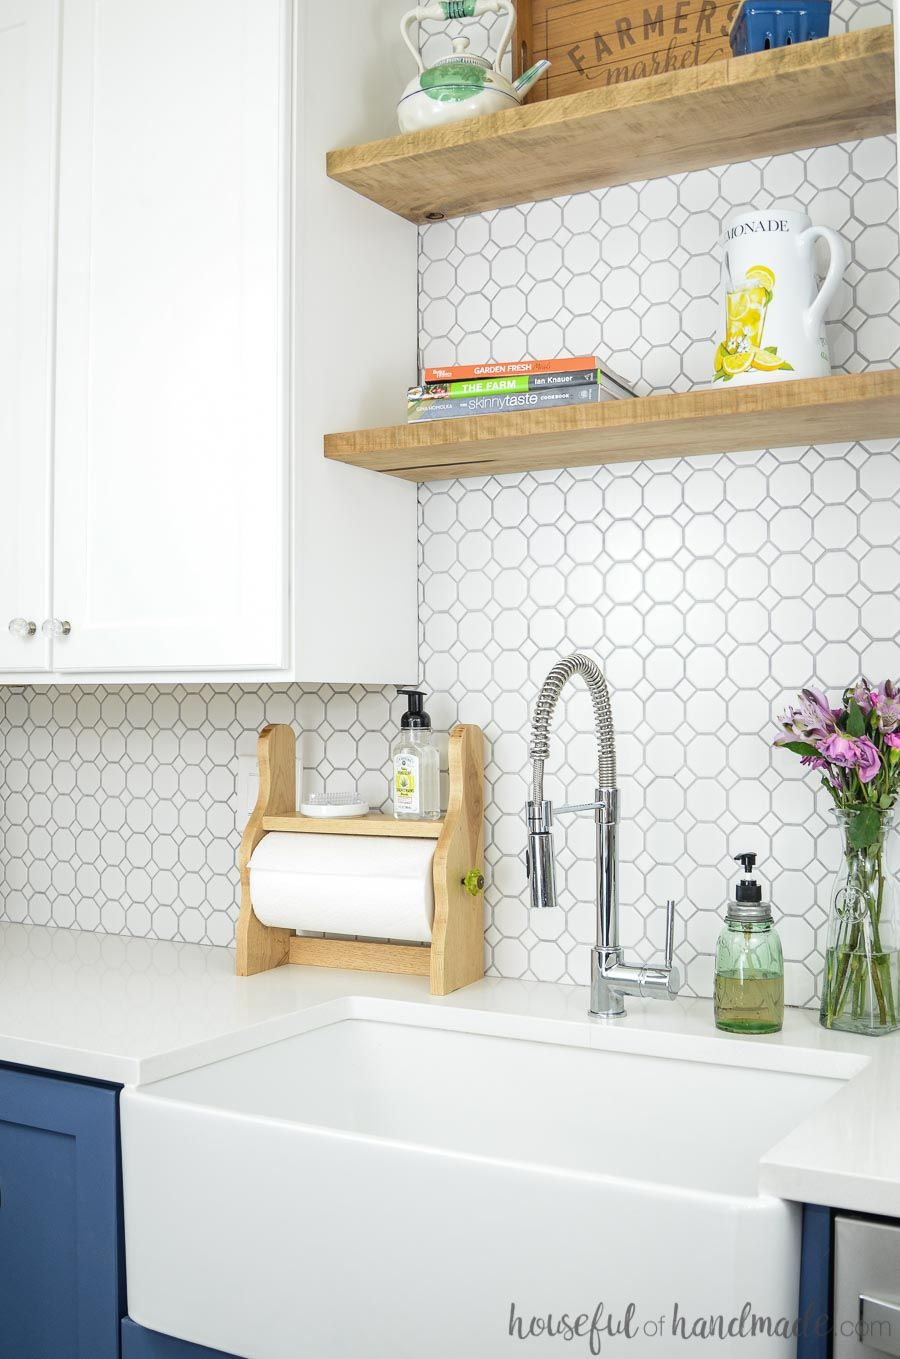 White kitchen with open shelves and white octagon tile backsplash beautiful farmhouse paper towel holder with shelf behind apron front sink